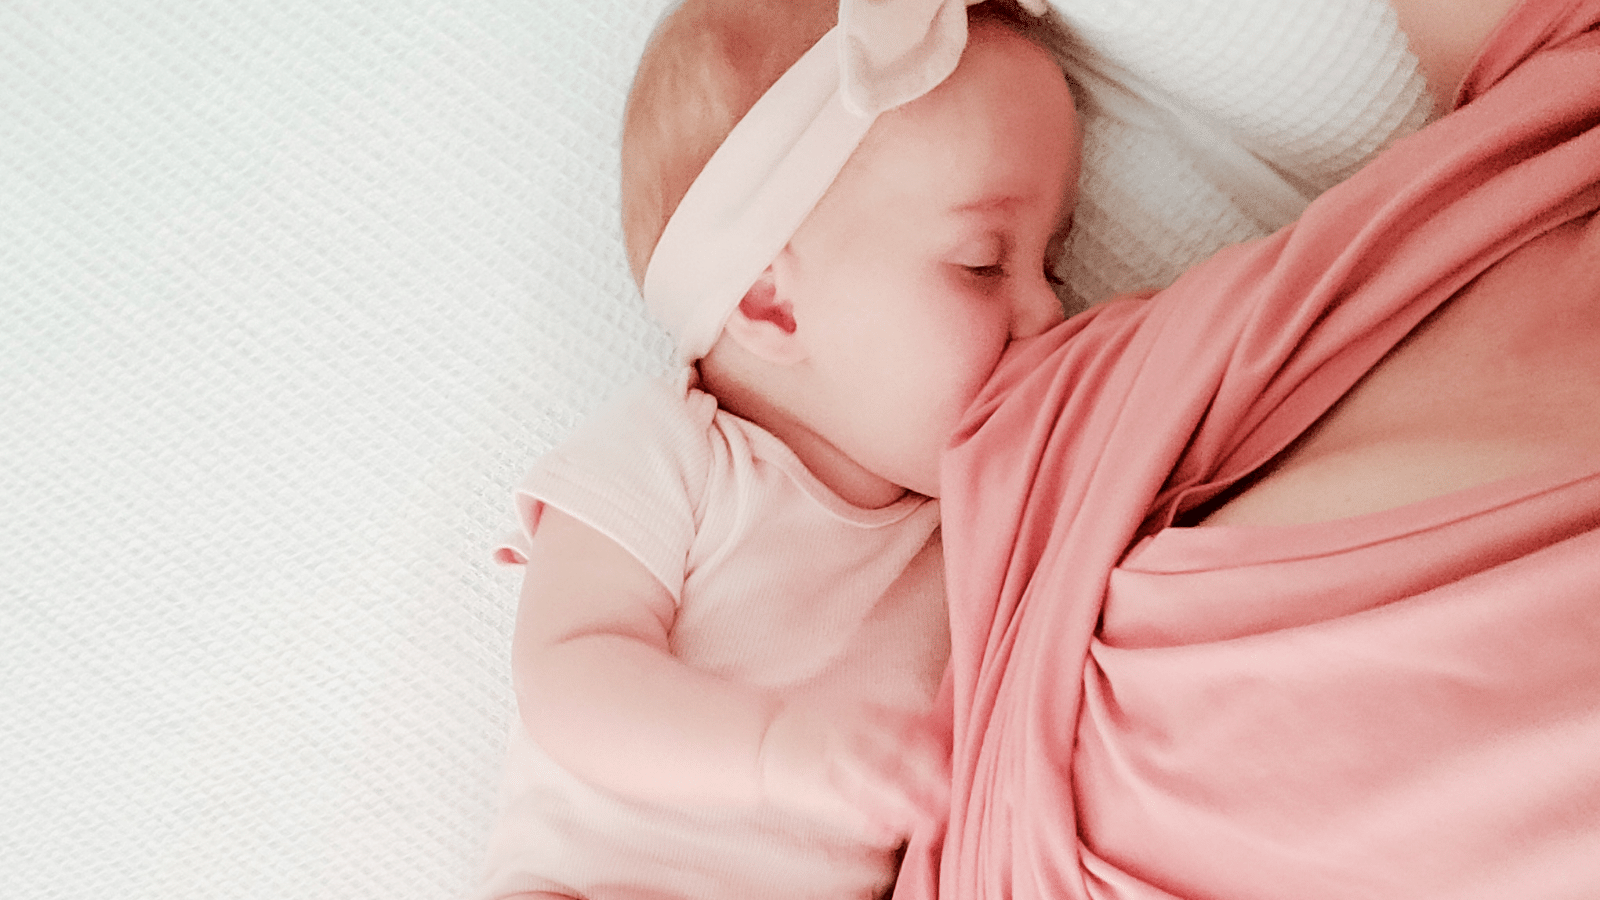 Breastfeeding and Co-sleeping: Some Pros and Cons